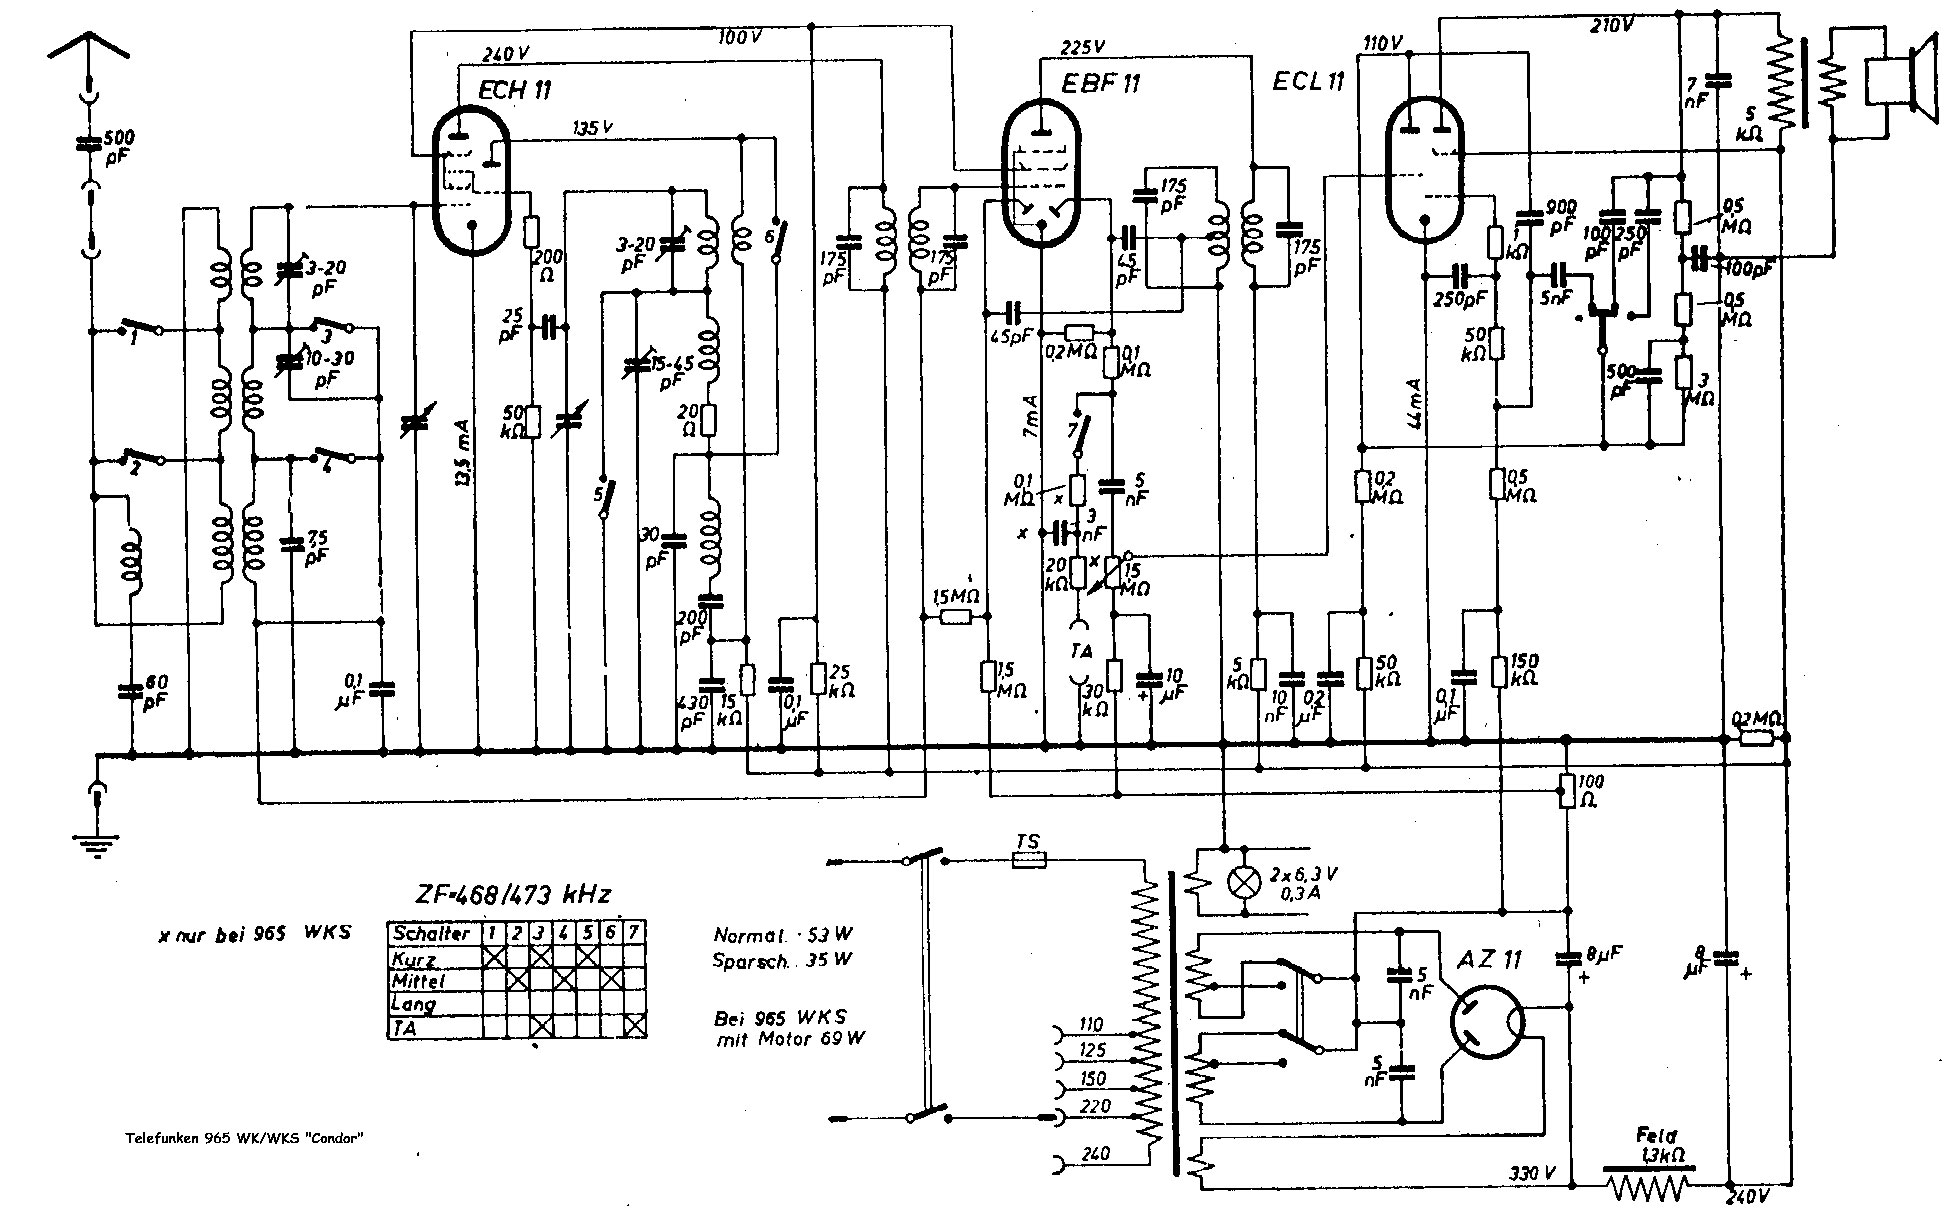 delco radio wiring diagram with Post Schematic Diagram on Delco Remy Alternator Wiring Diagram Internal also Wiring Diagram John Deere 4020 as well Post schematic Diagram additionally Gm Radio Wiring Diagram For 03 in addition Diagram Electrical Wiring 1975 1975.